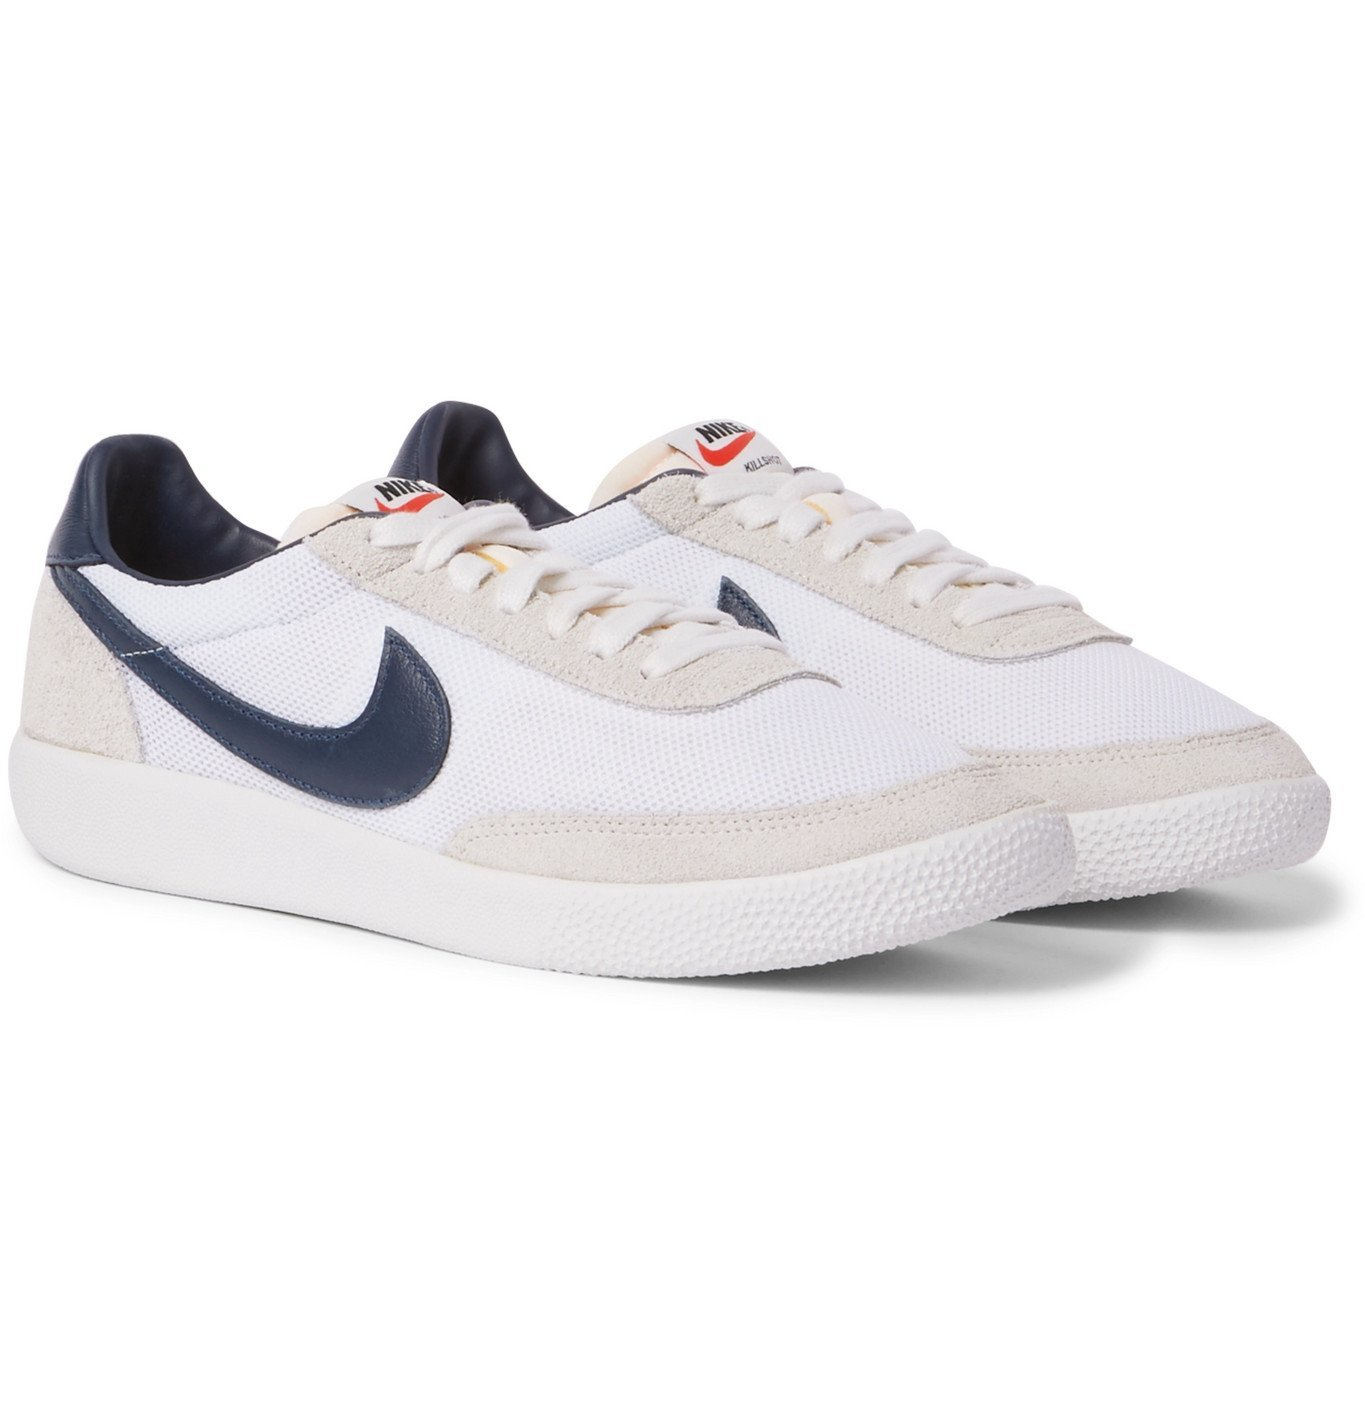 Photo: Nike - Killshot OG SP Mesh, Leather and Suede Sneakers - Neutrals